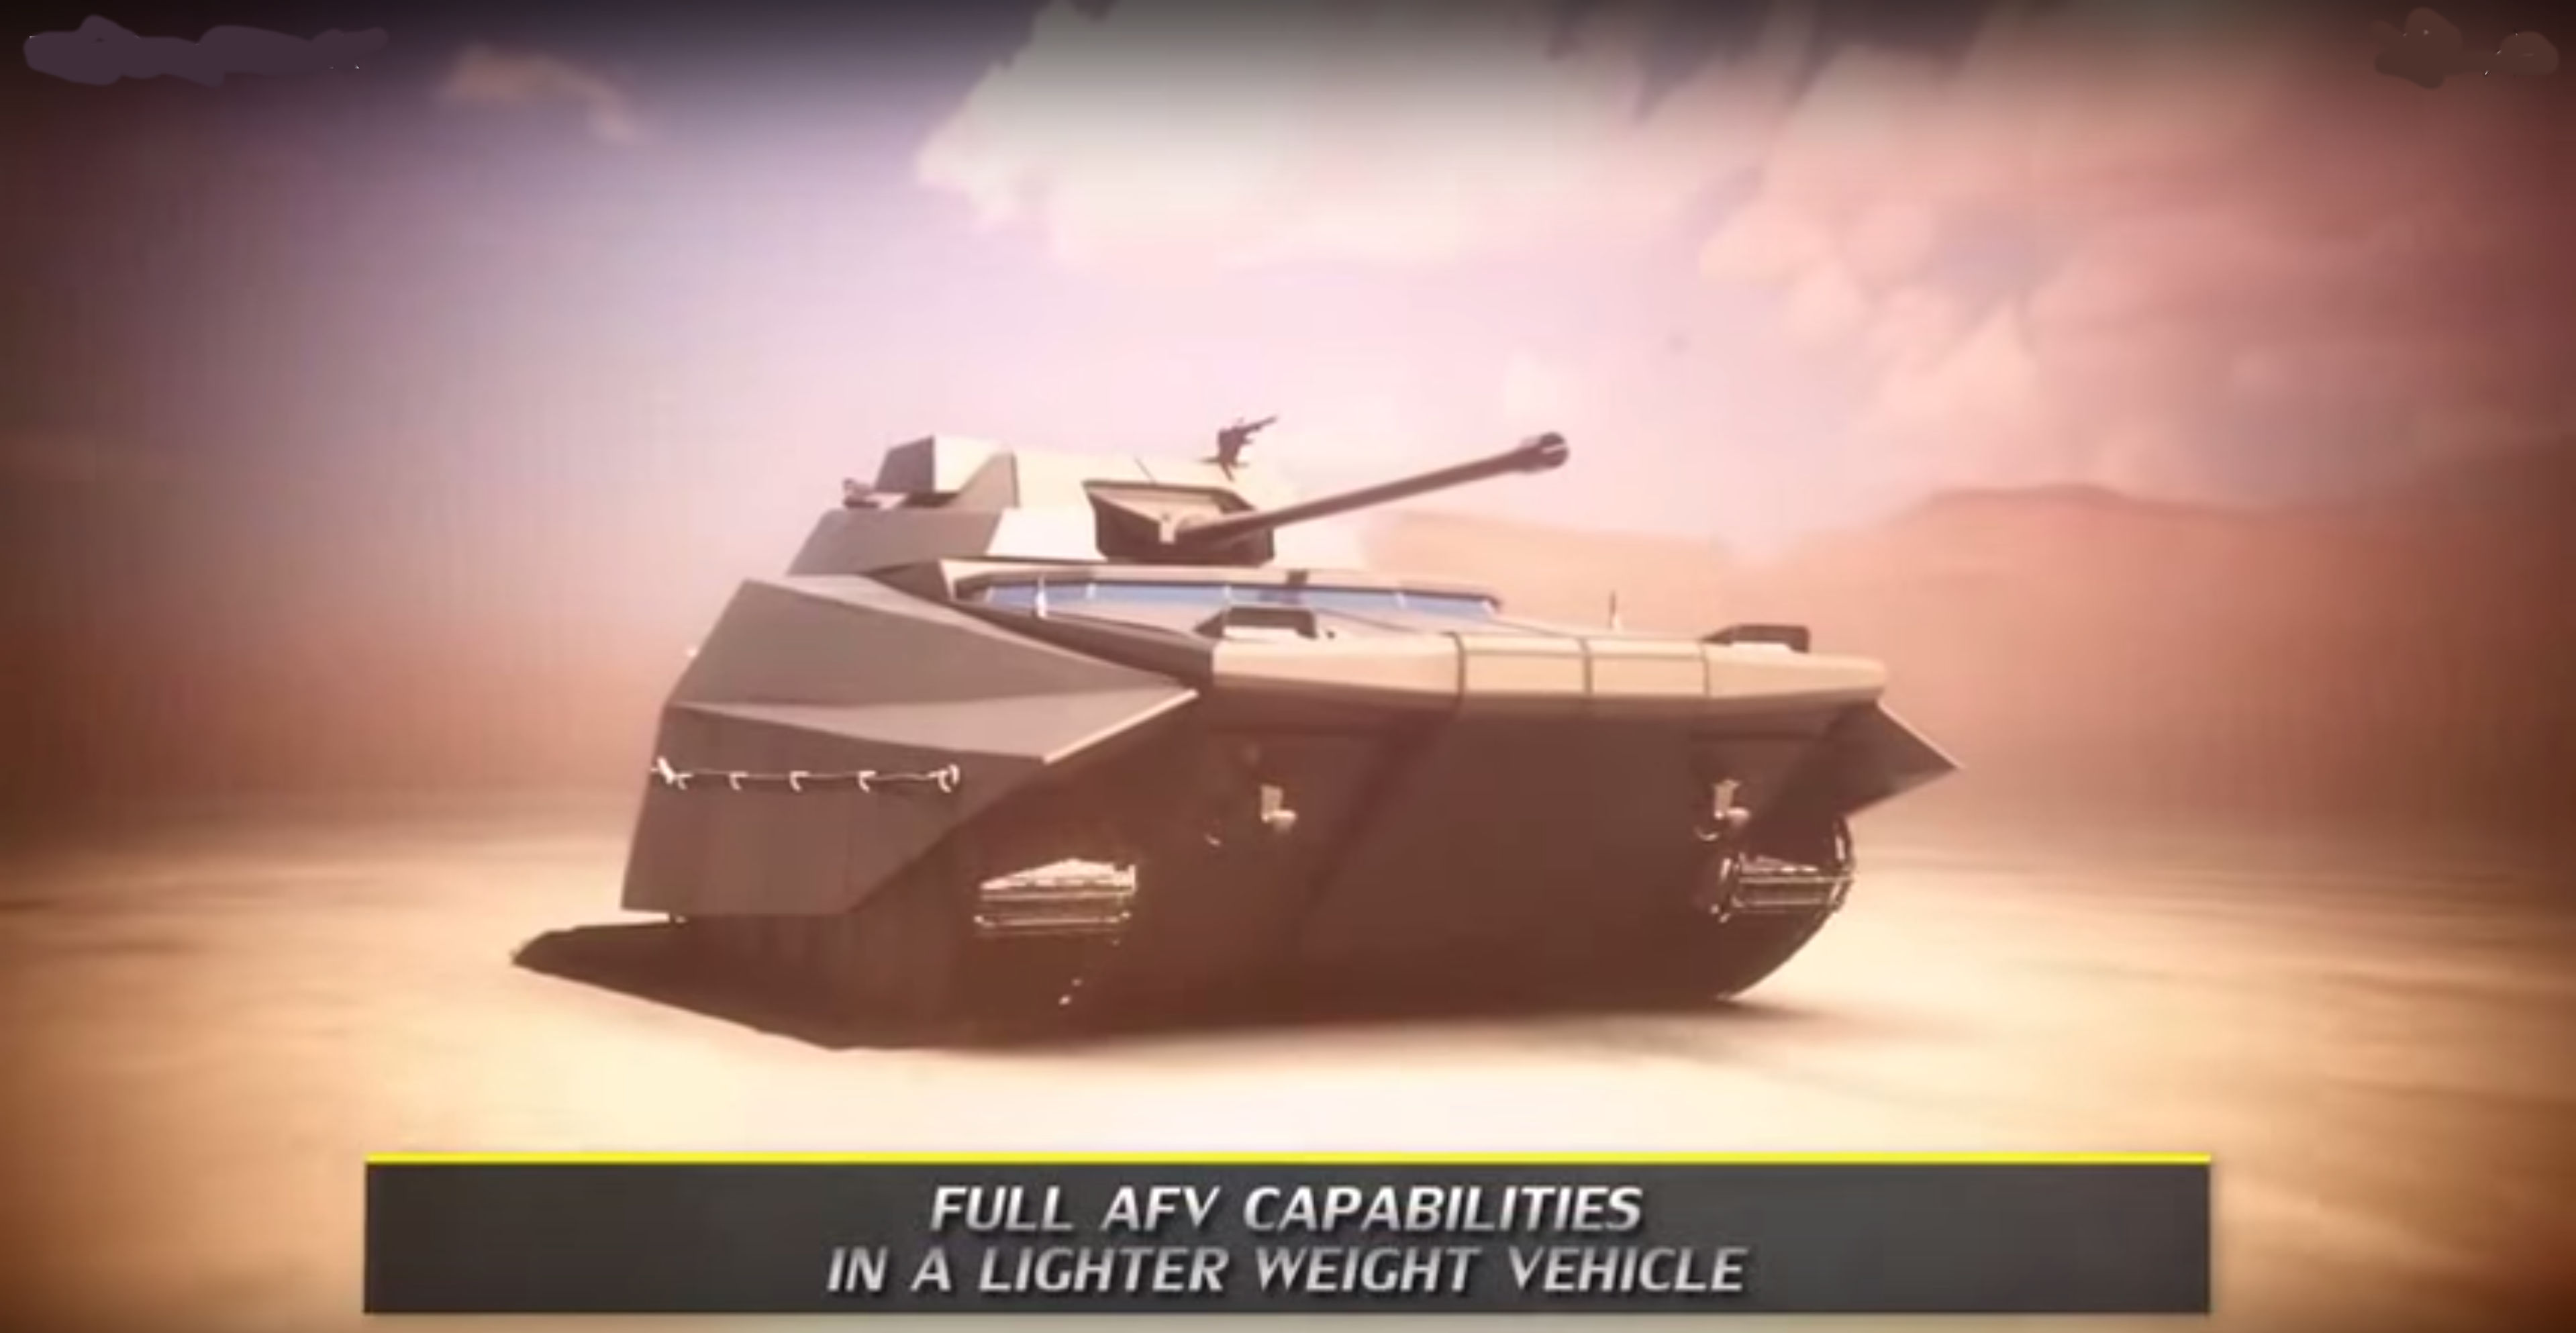 Auto Armor Review >> Israeli Carmel Armored Vehicle/Tank, SMASH Electro-Optical Aiming System/Weapons Sight, UAS/UAV ...